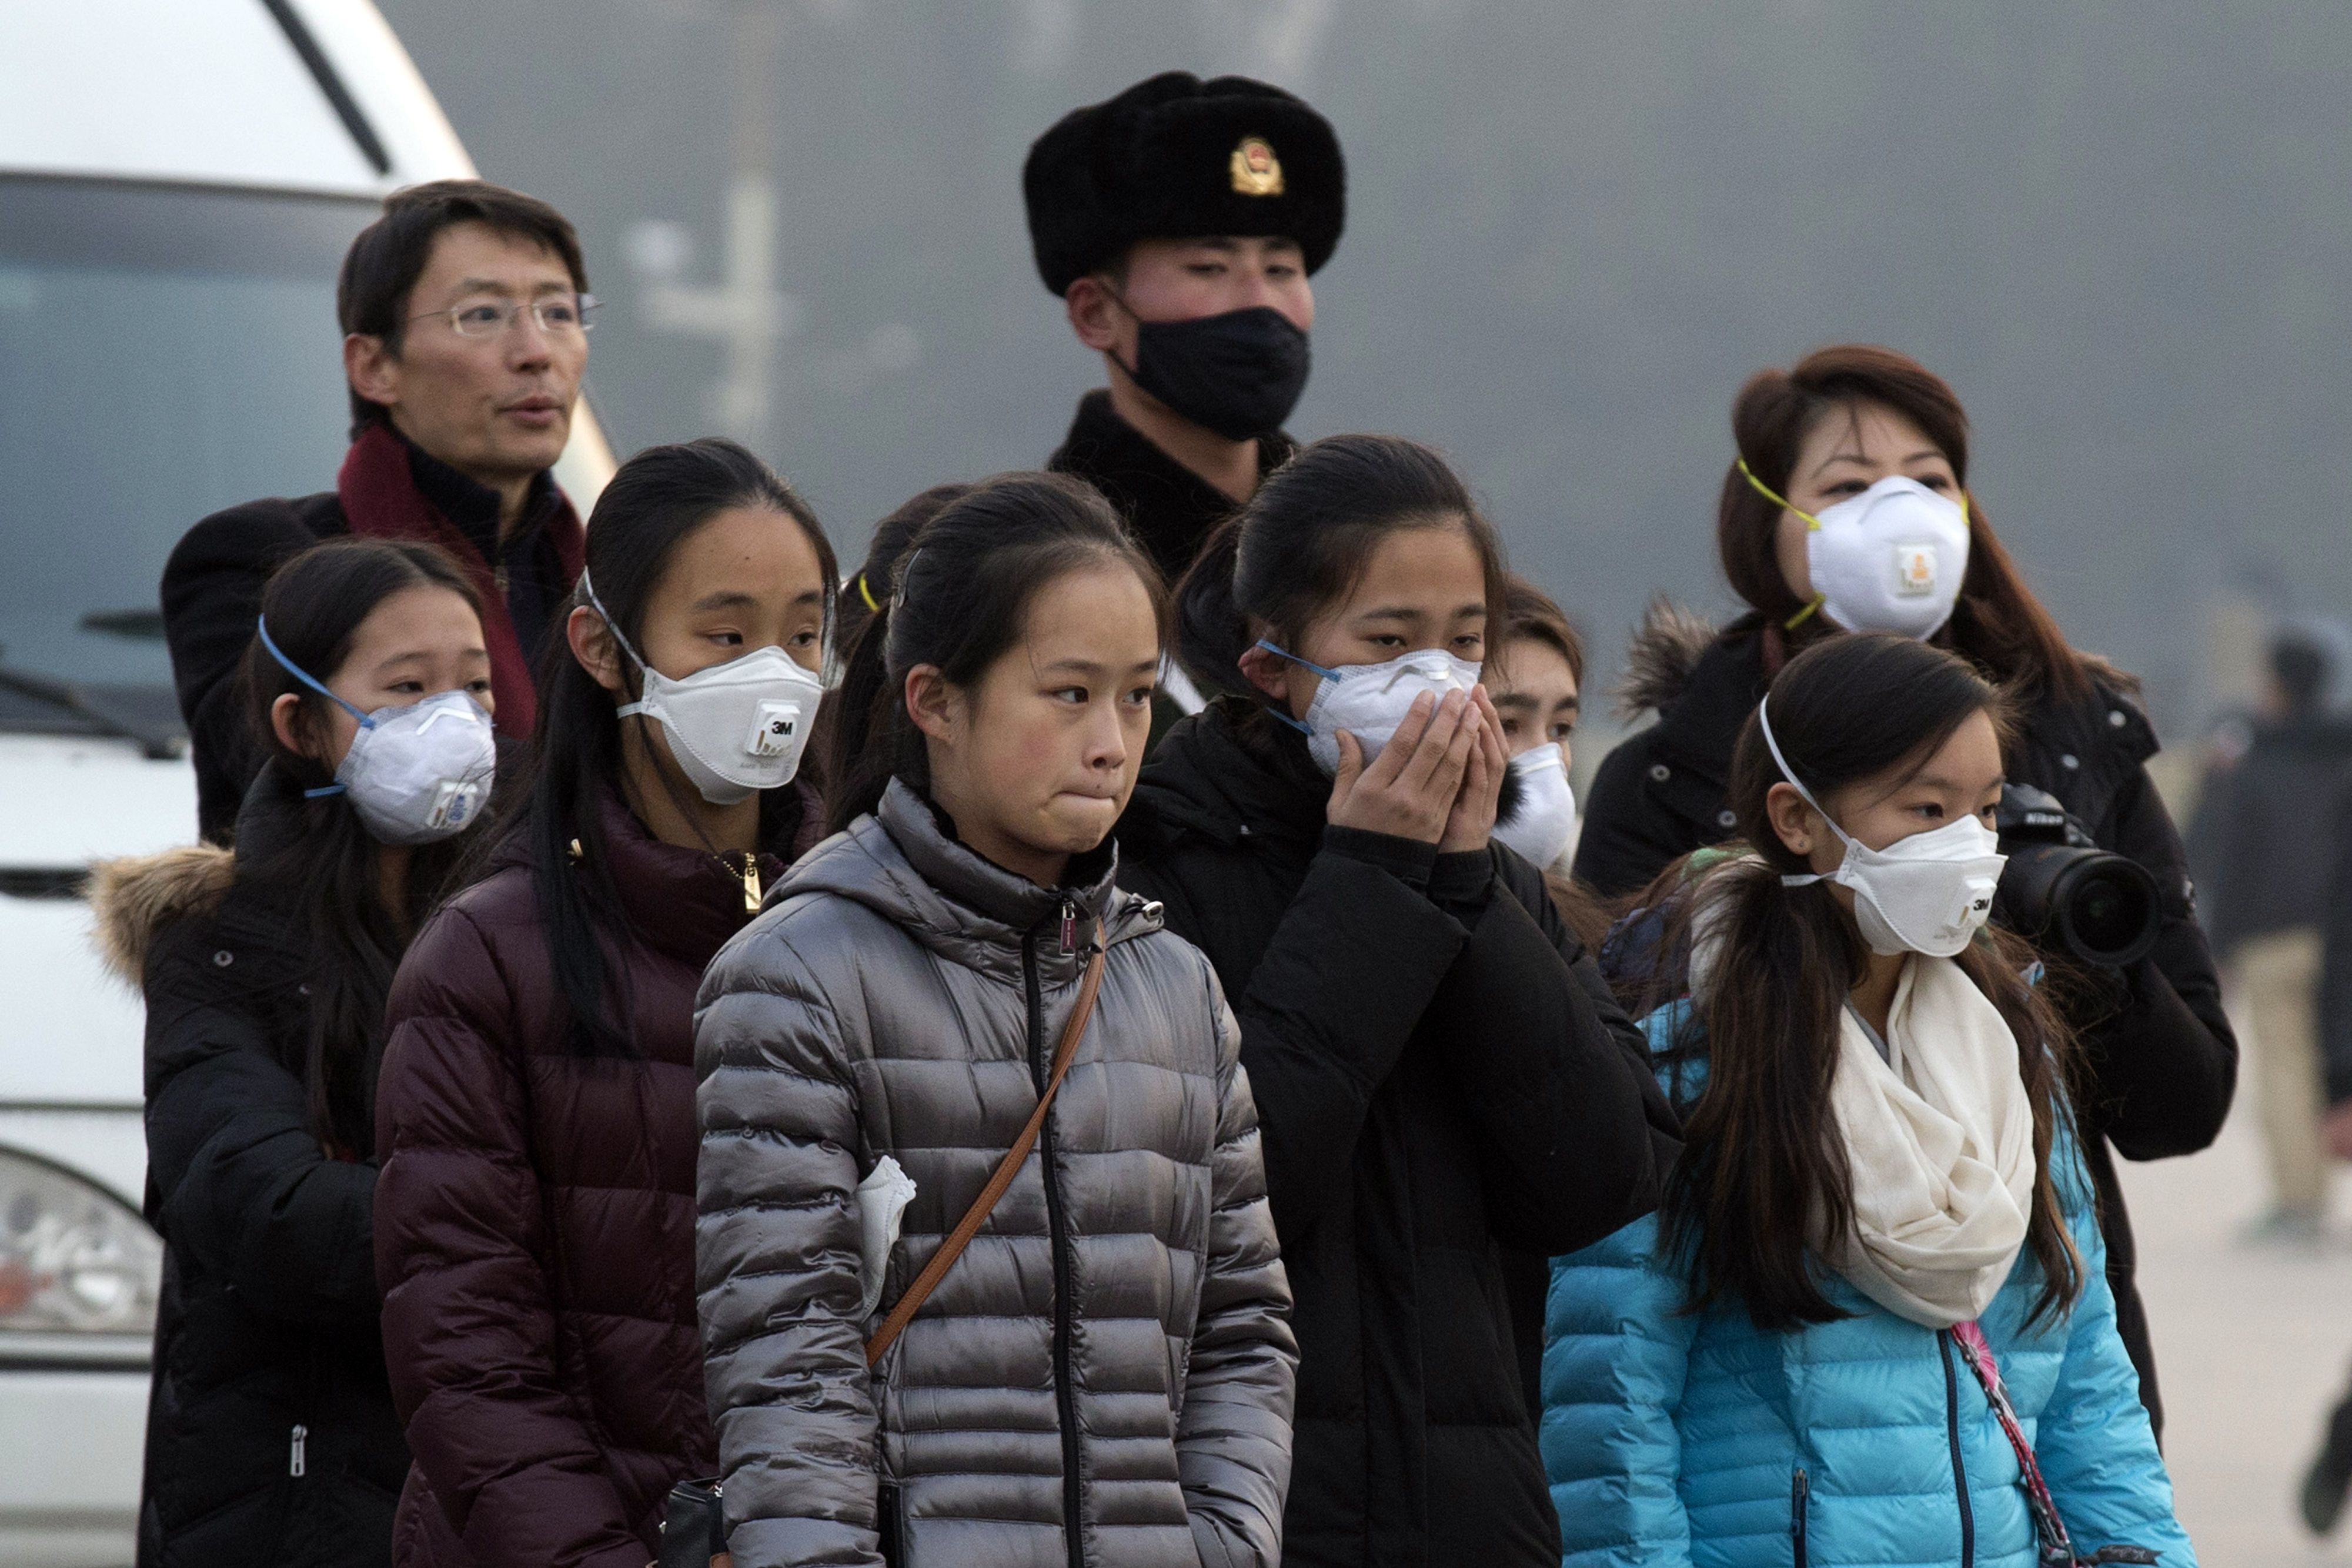 Air pollution problem grows almost daily in China's smoggy Beijing.